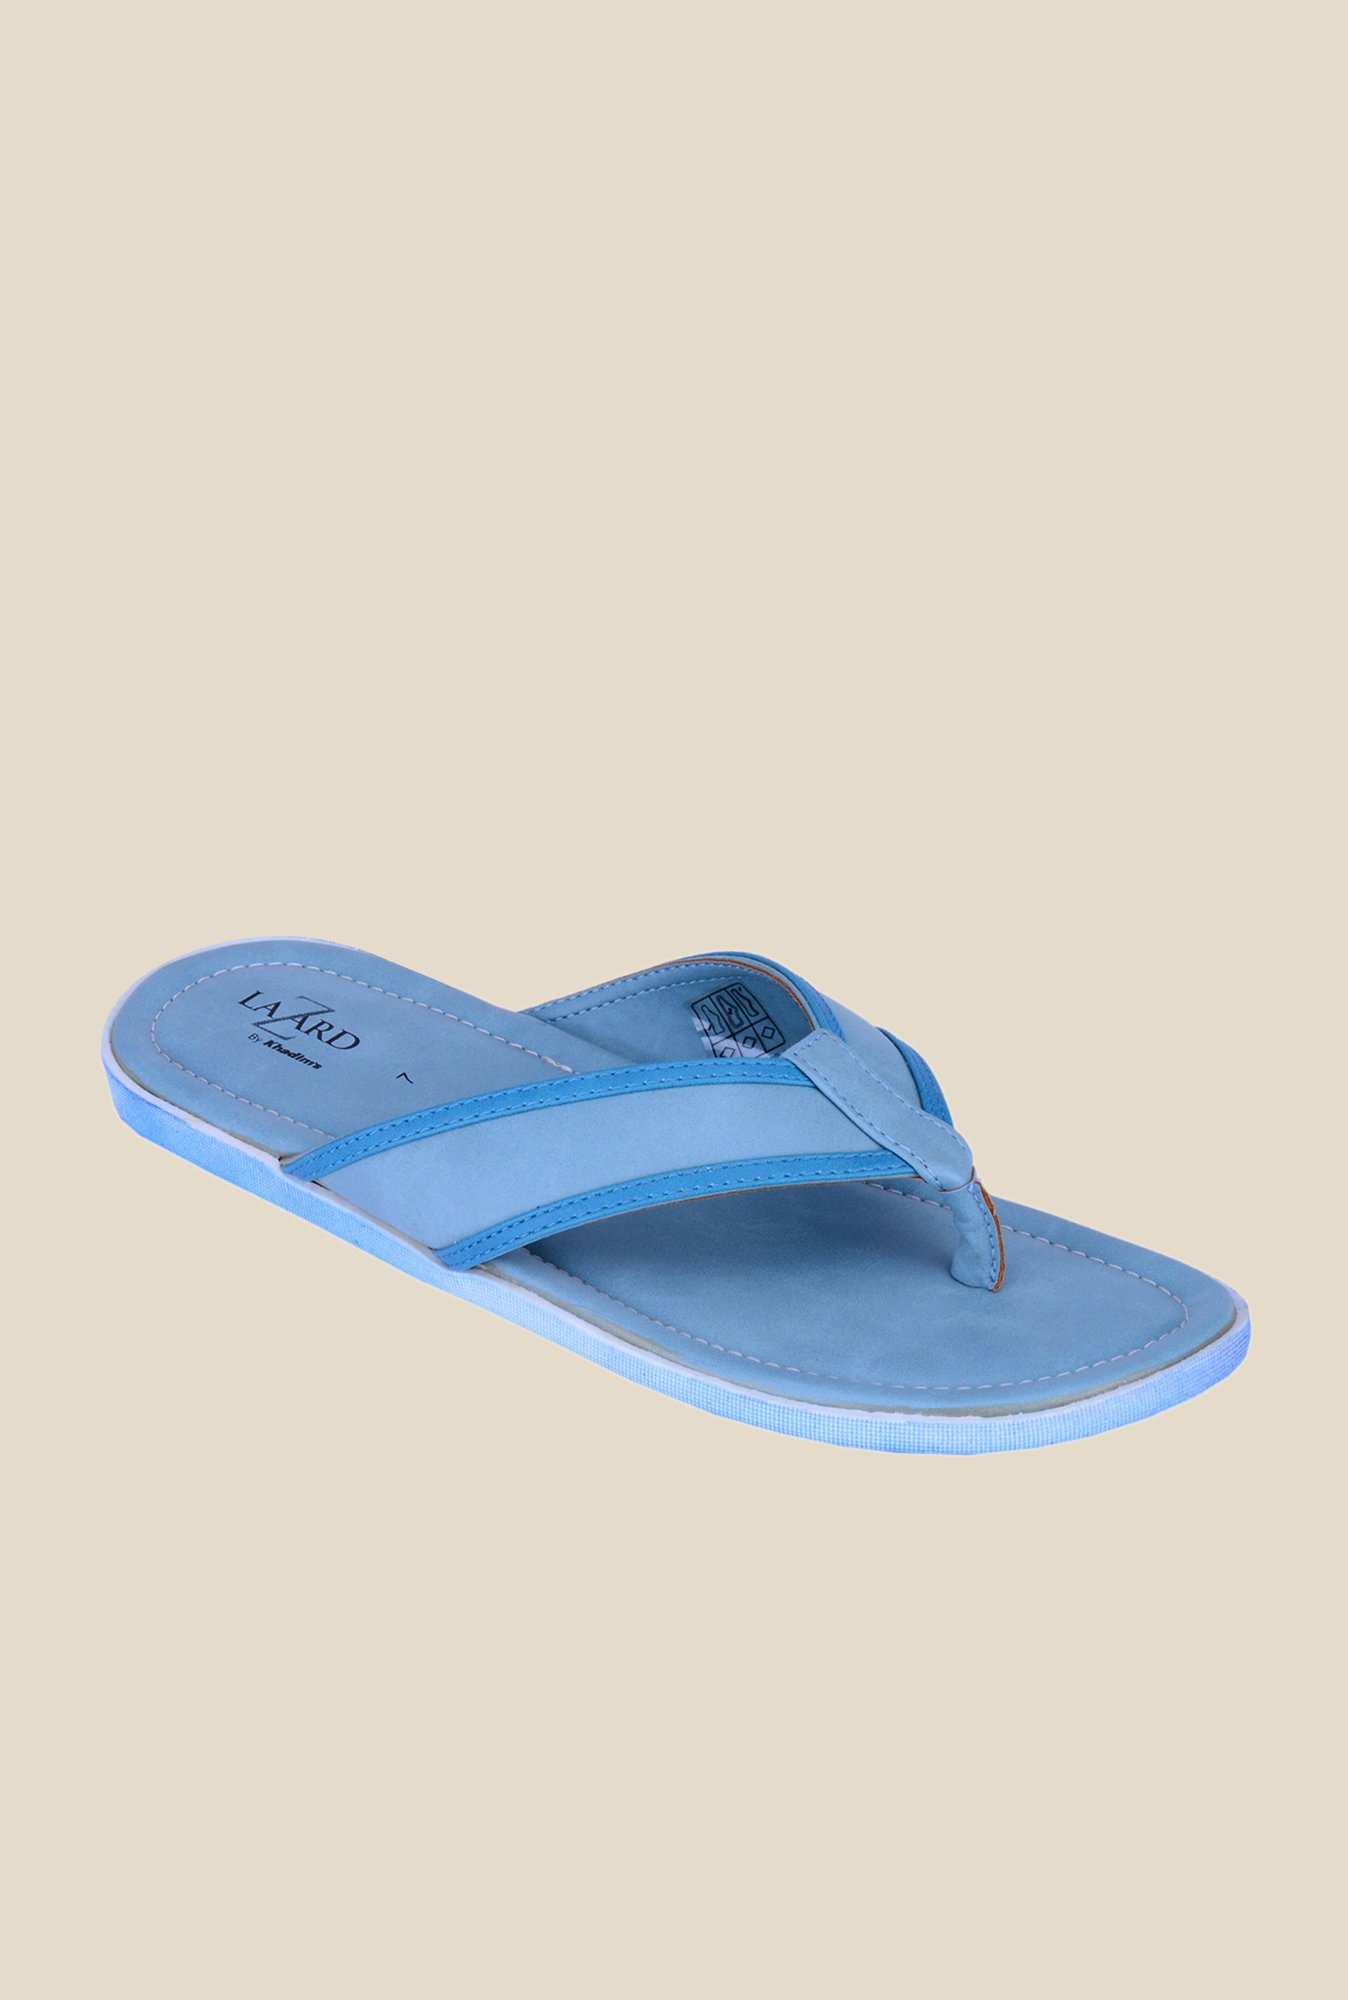 Khadim's Lazard Blue Thong Sandals